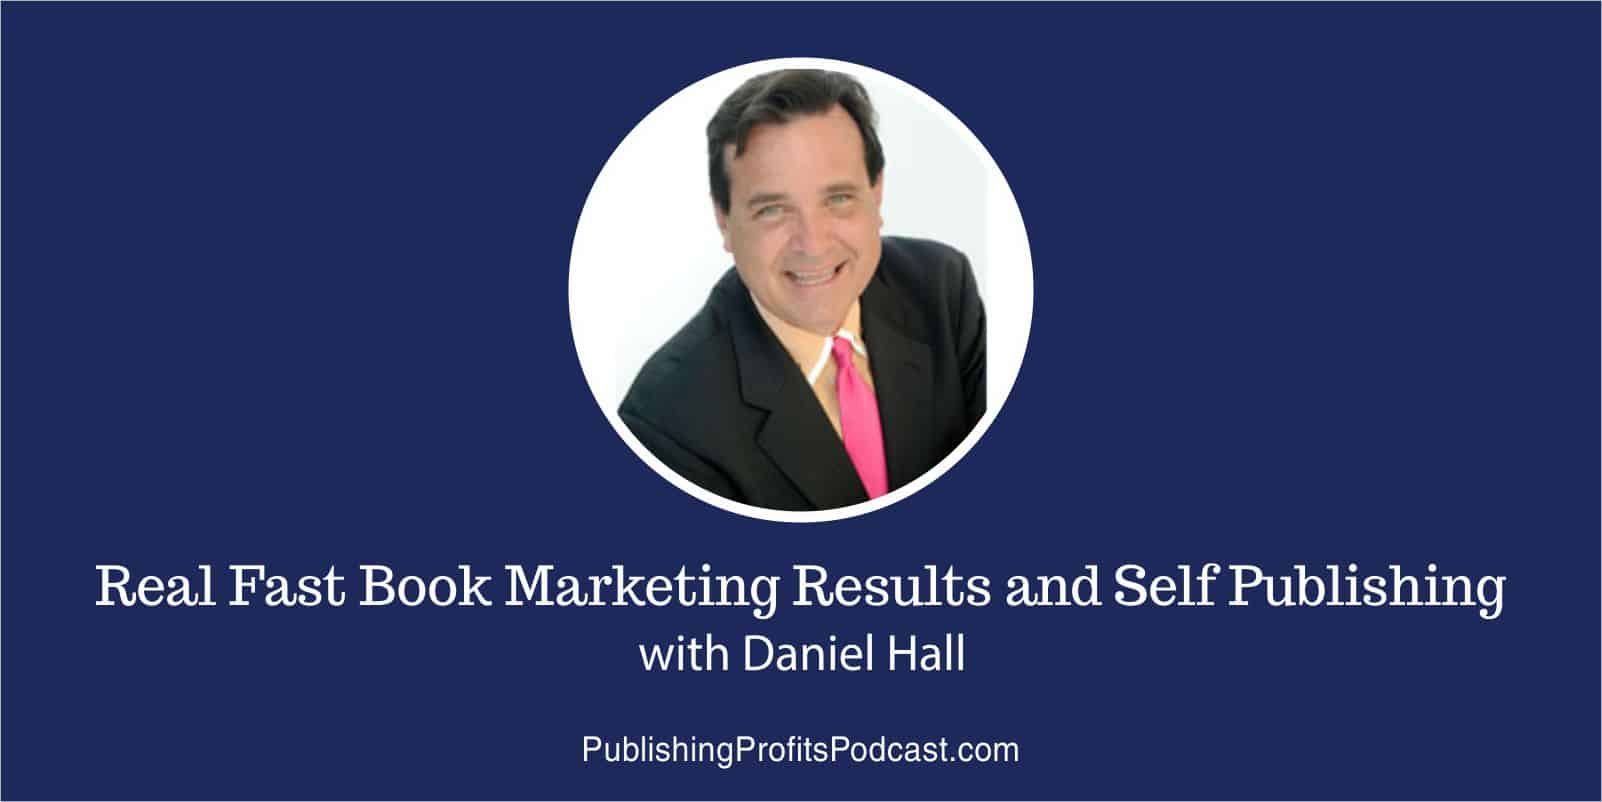 Real Fast Book Marketing Results Daniel Hall header